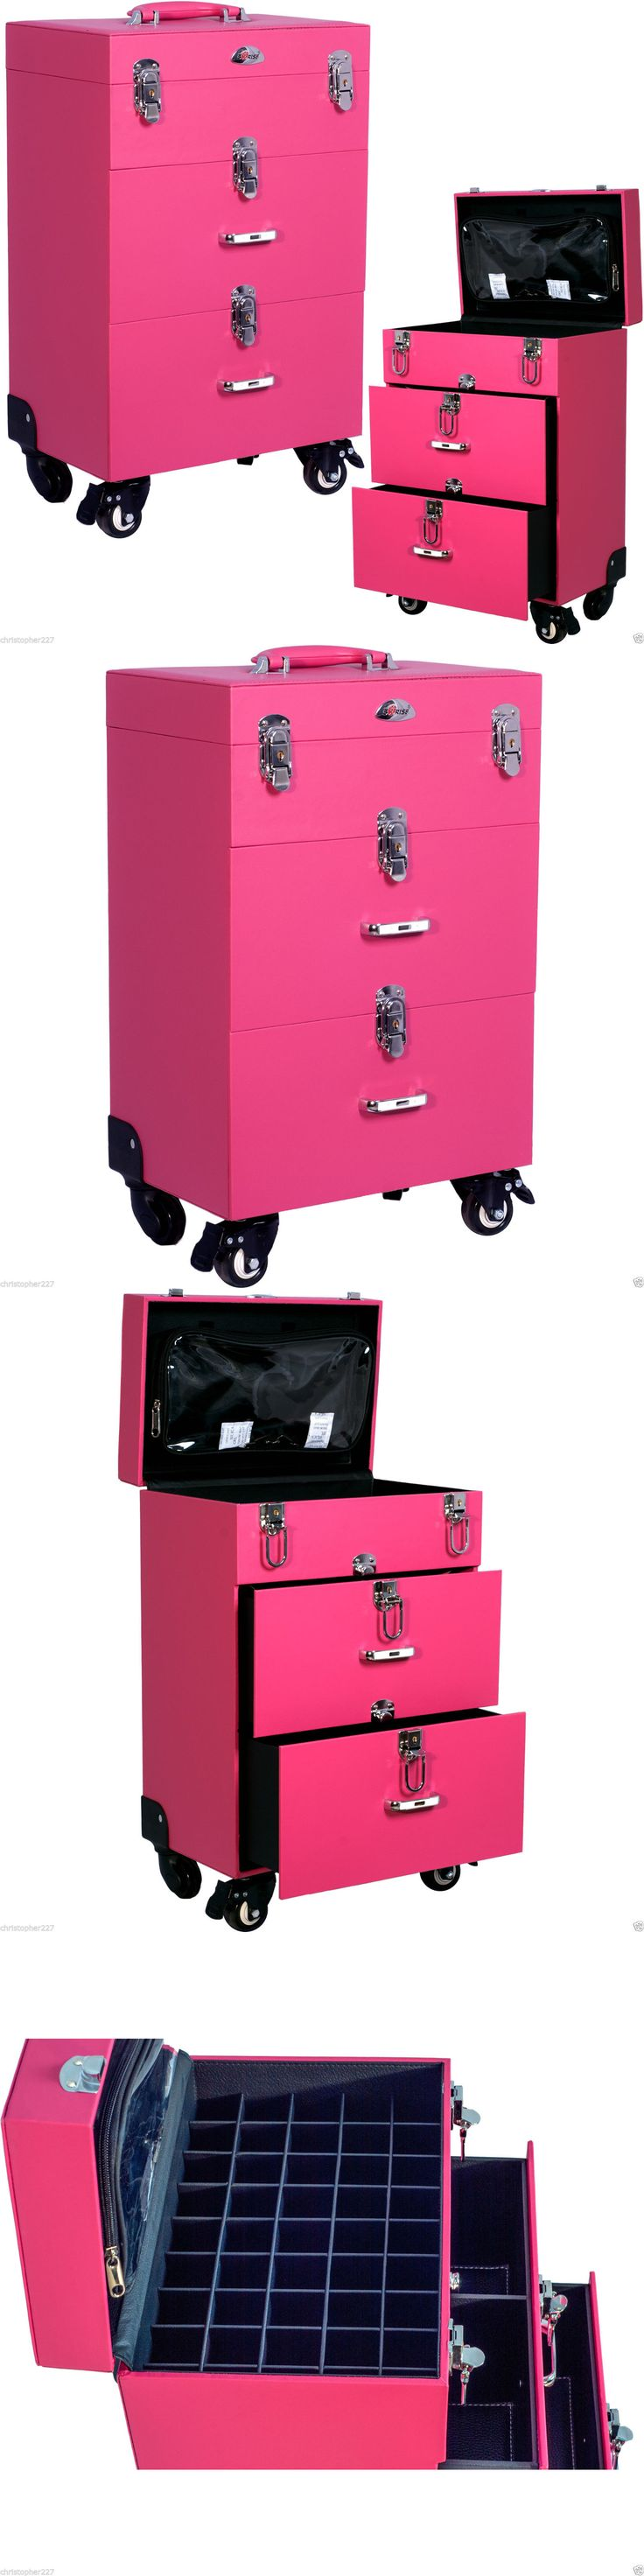 Nail Art Accessories: Professional Opi Nail Polish Manicure Makeup Trolley Case Box Organizers Storage -> BUY IT NOW ONLY: $199.99 on eBay!